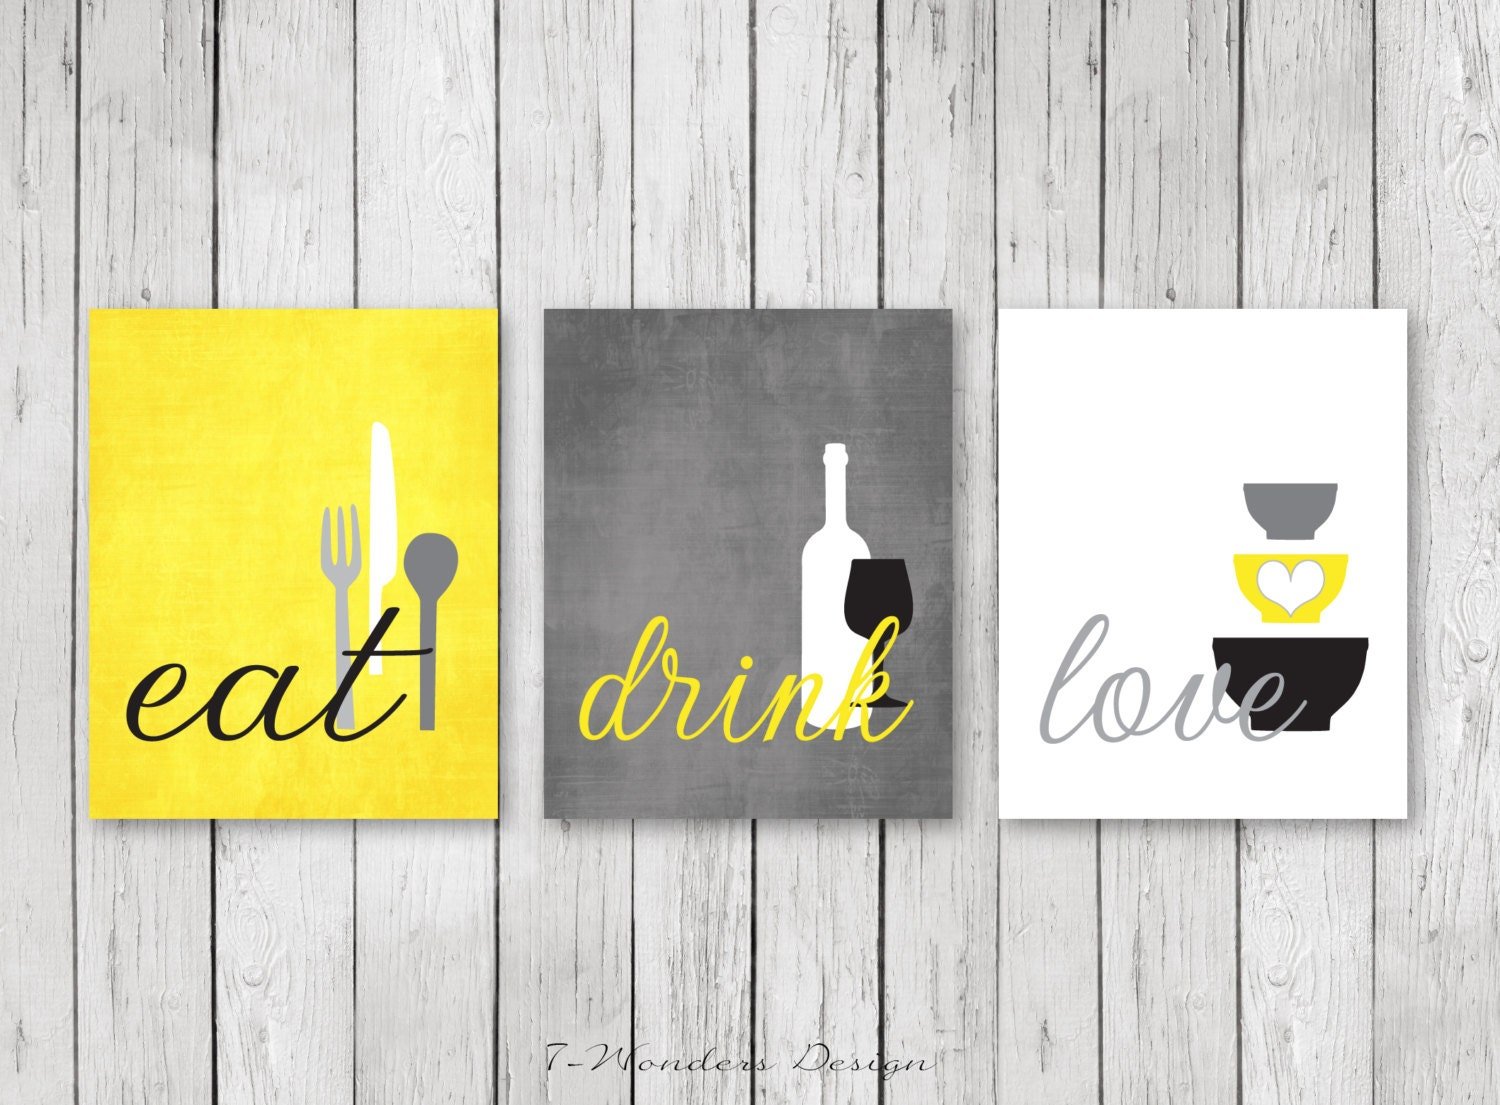 Art Prints For Kitchen Wall Of Kitchen Wall Art Print Set Eat Drink Love By 7wondersdesign